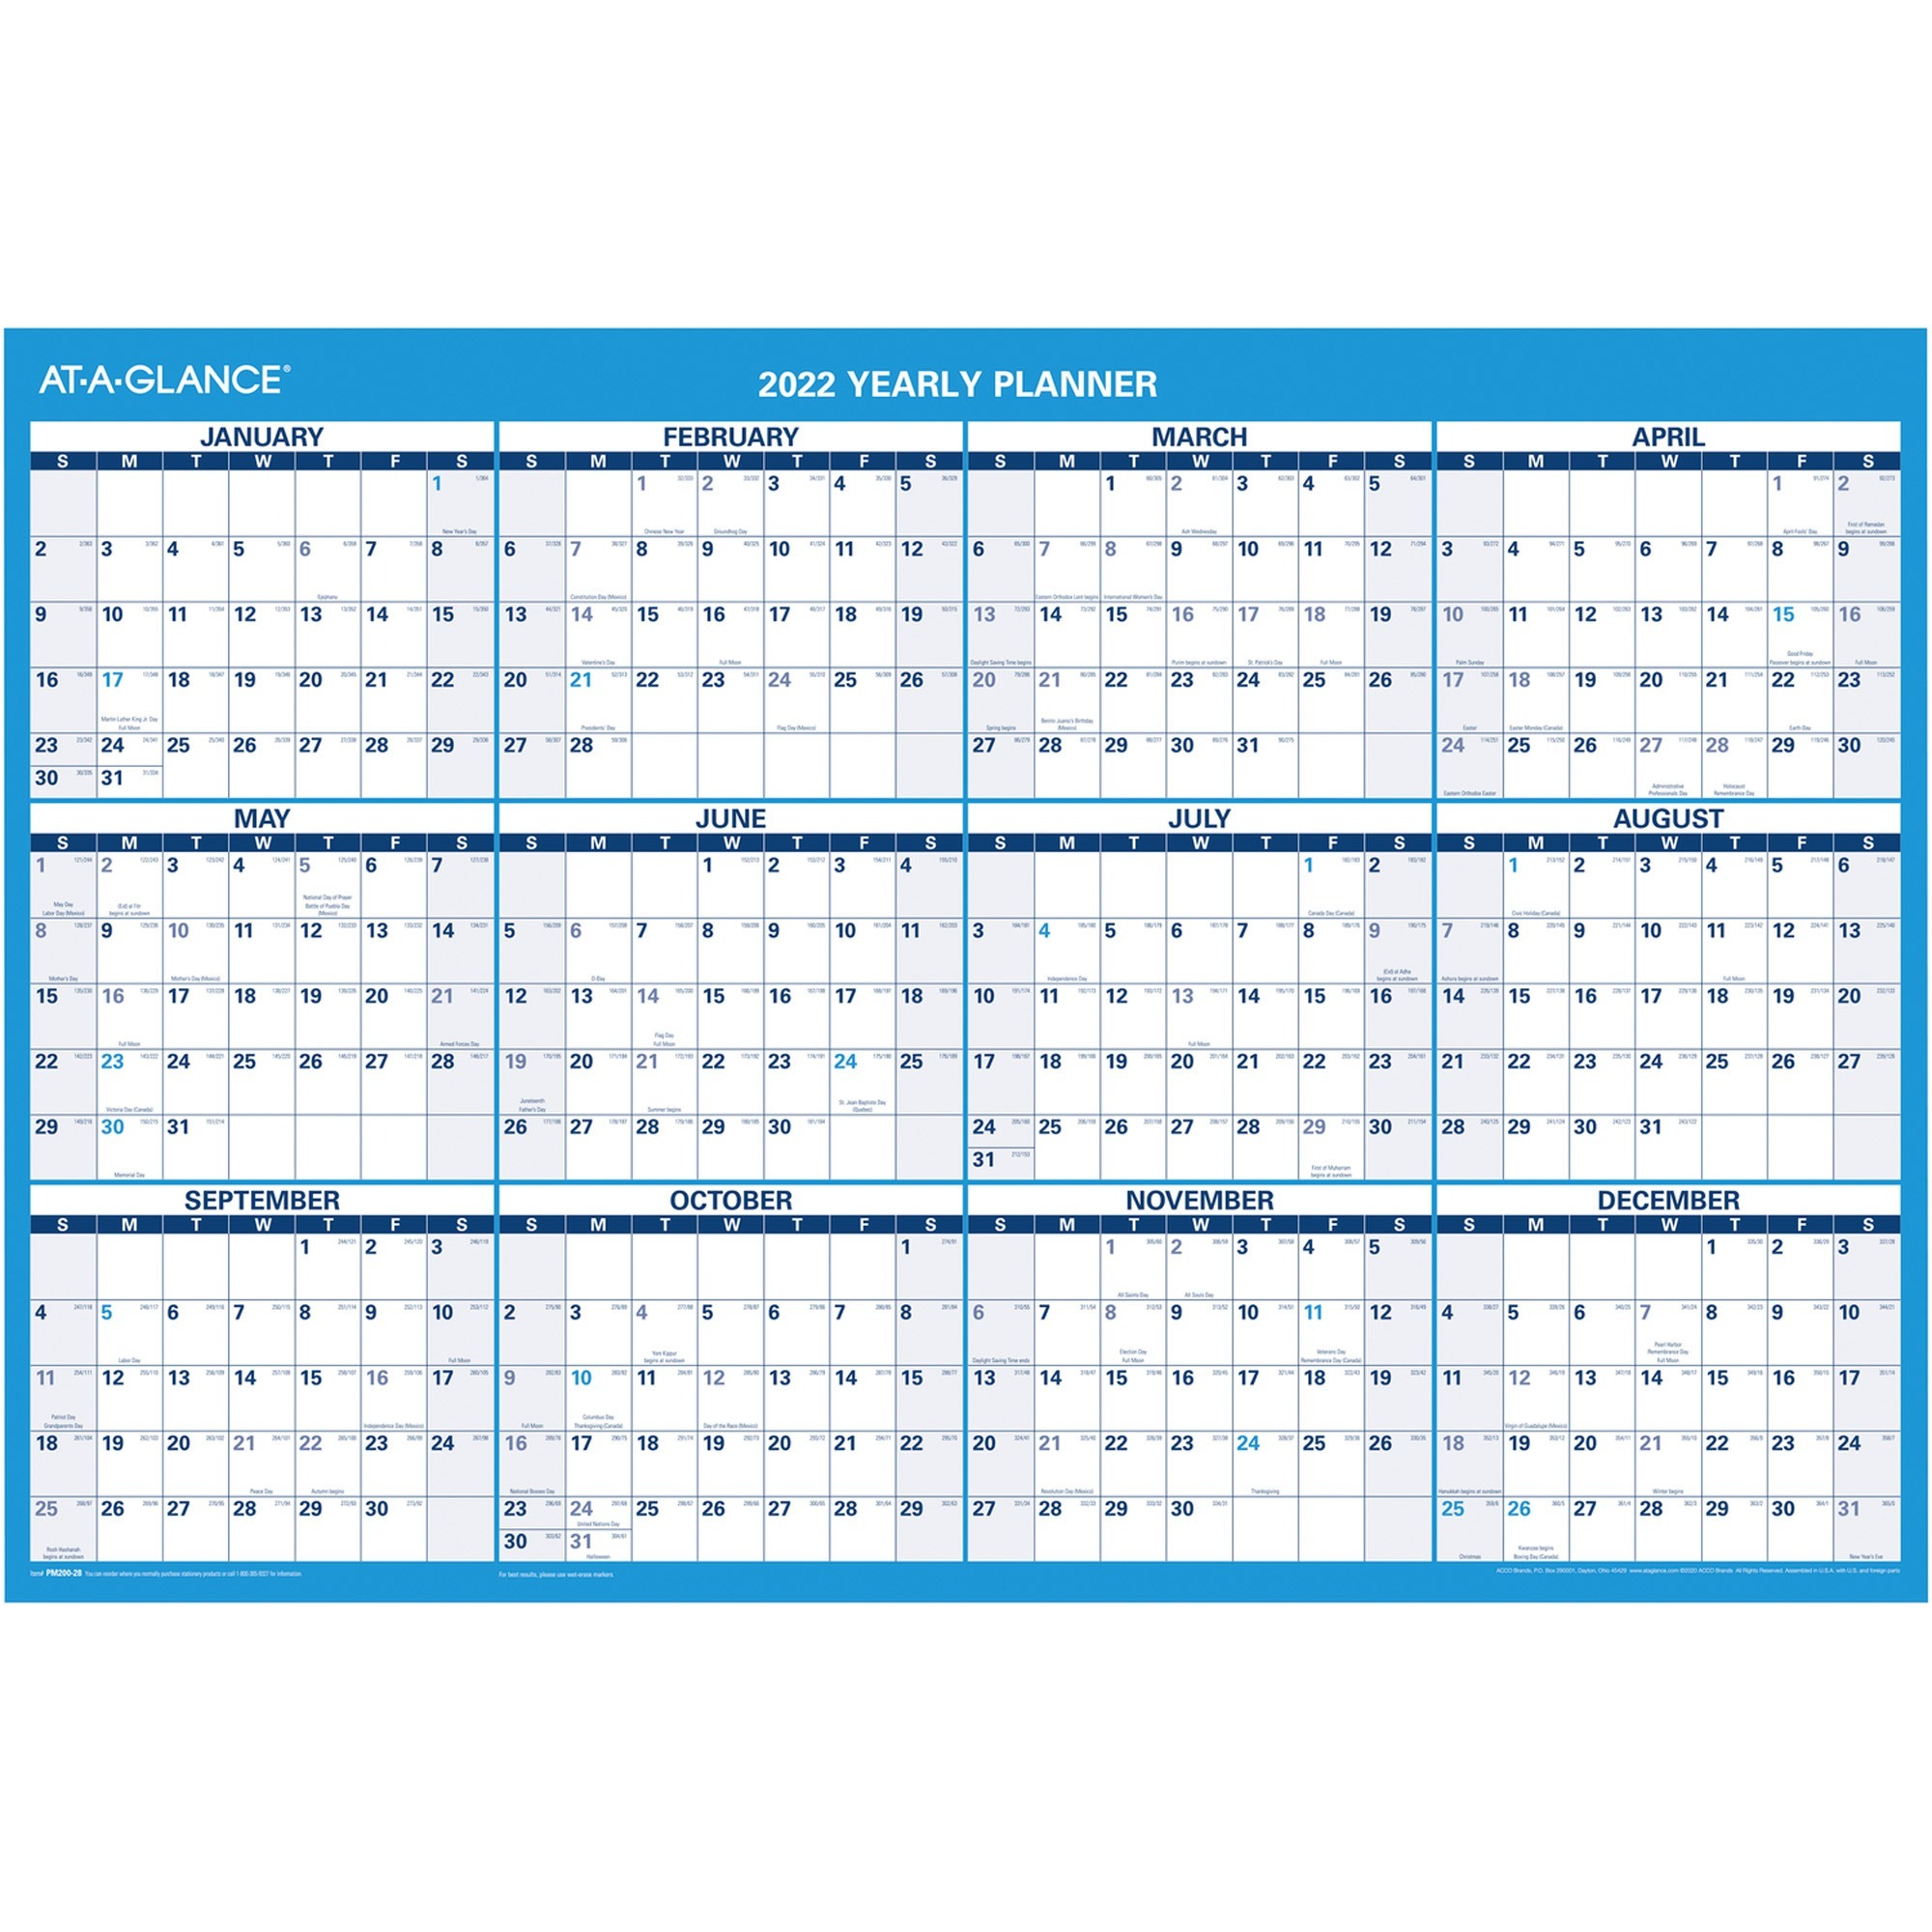 At-A-Glance Erasable Yearly Wall Planner - Yearly - 1 Year - January 2020 till December 2020 - 36